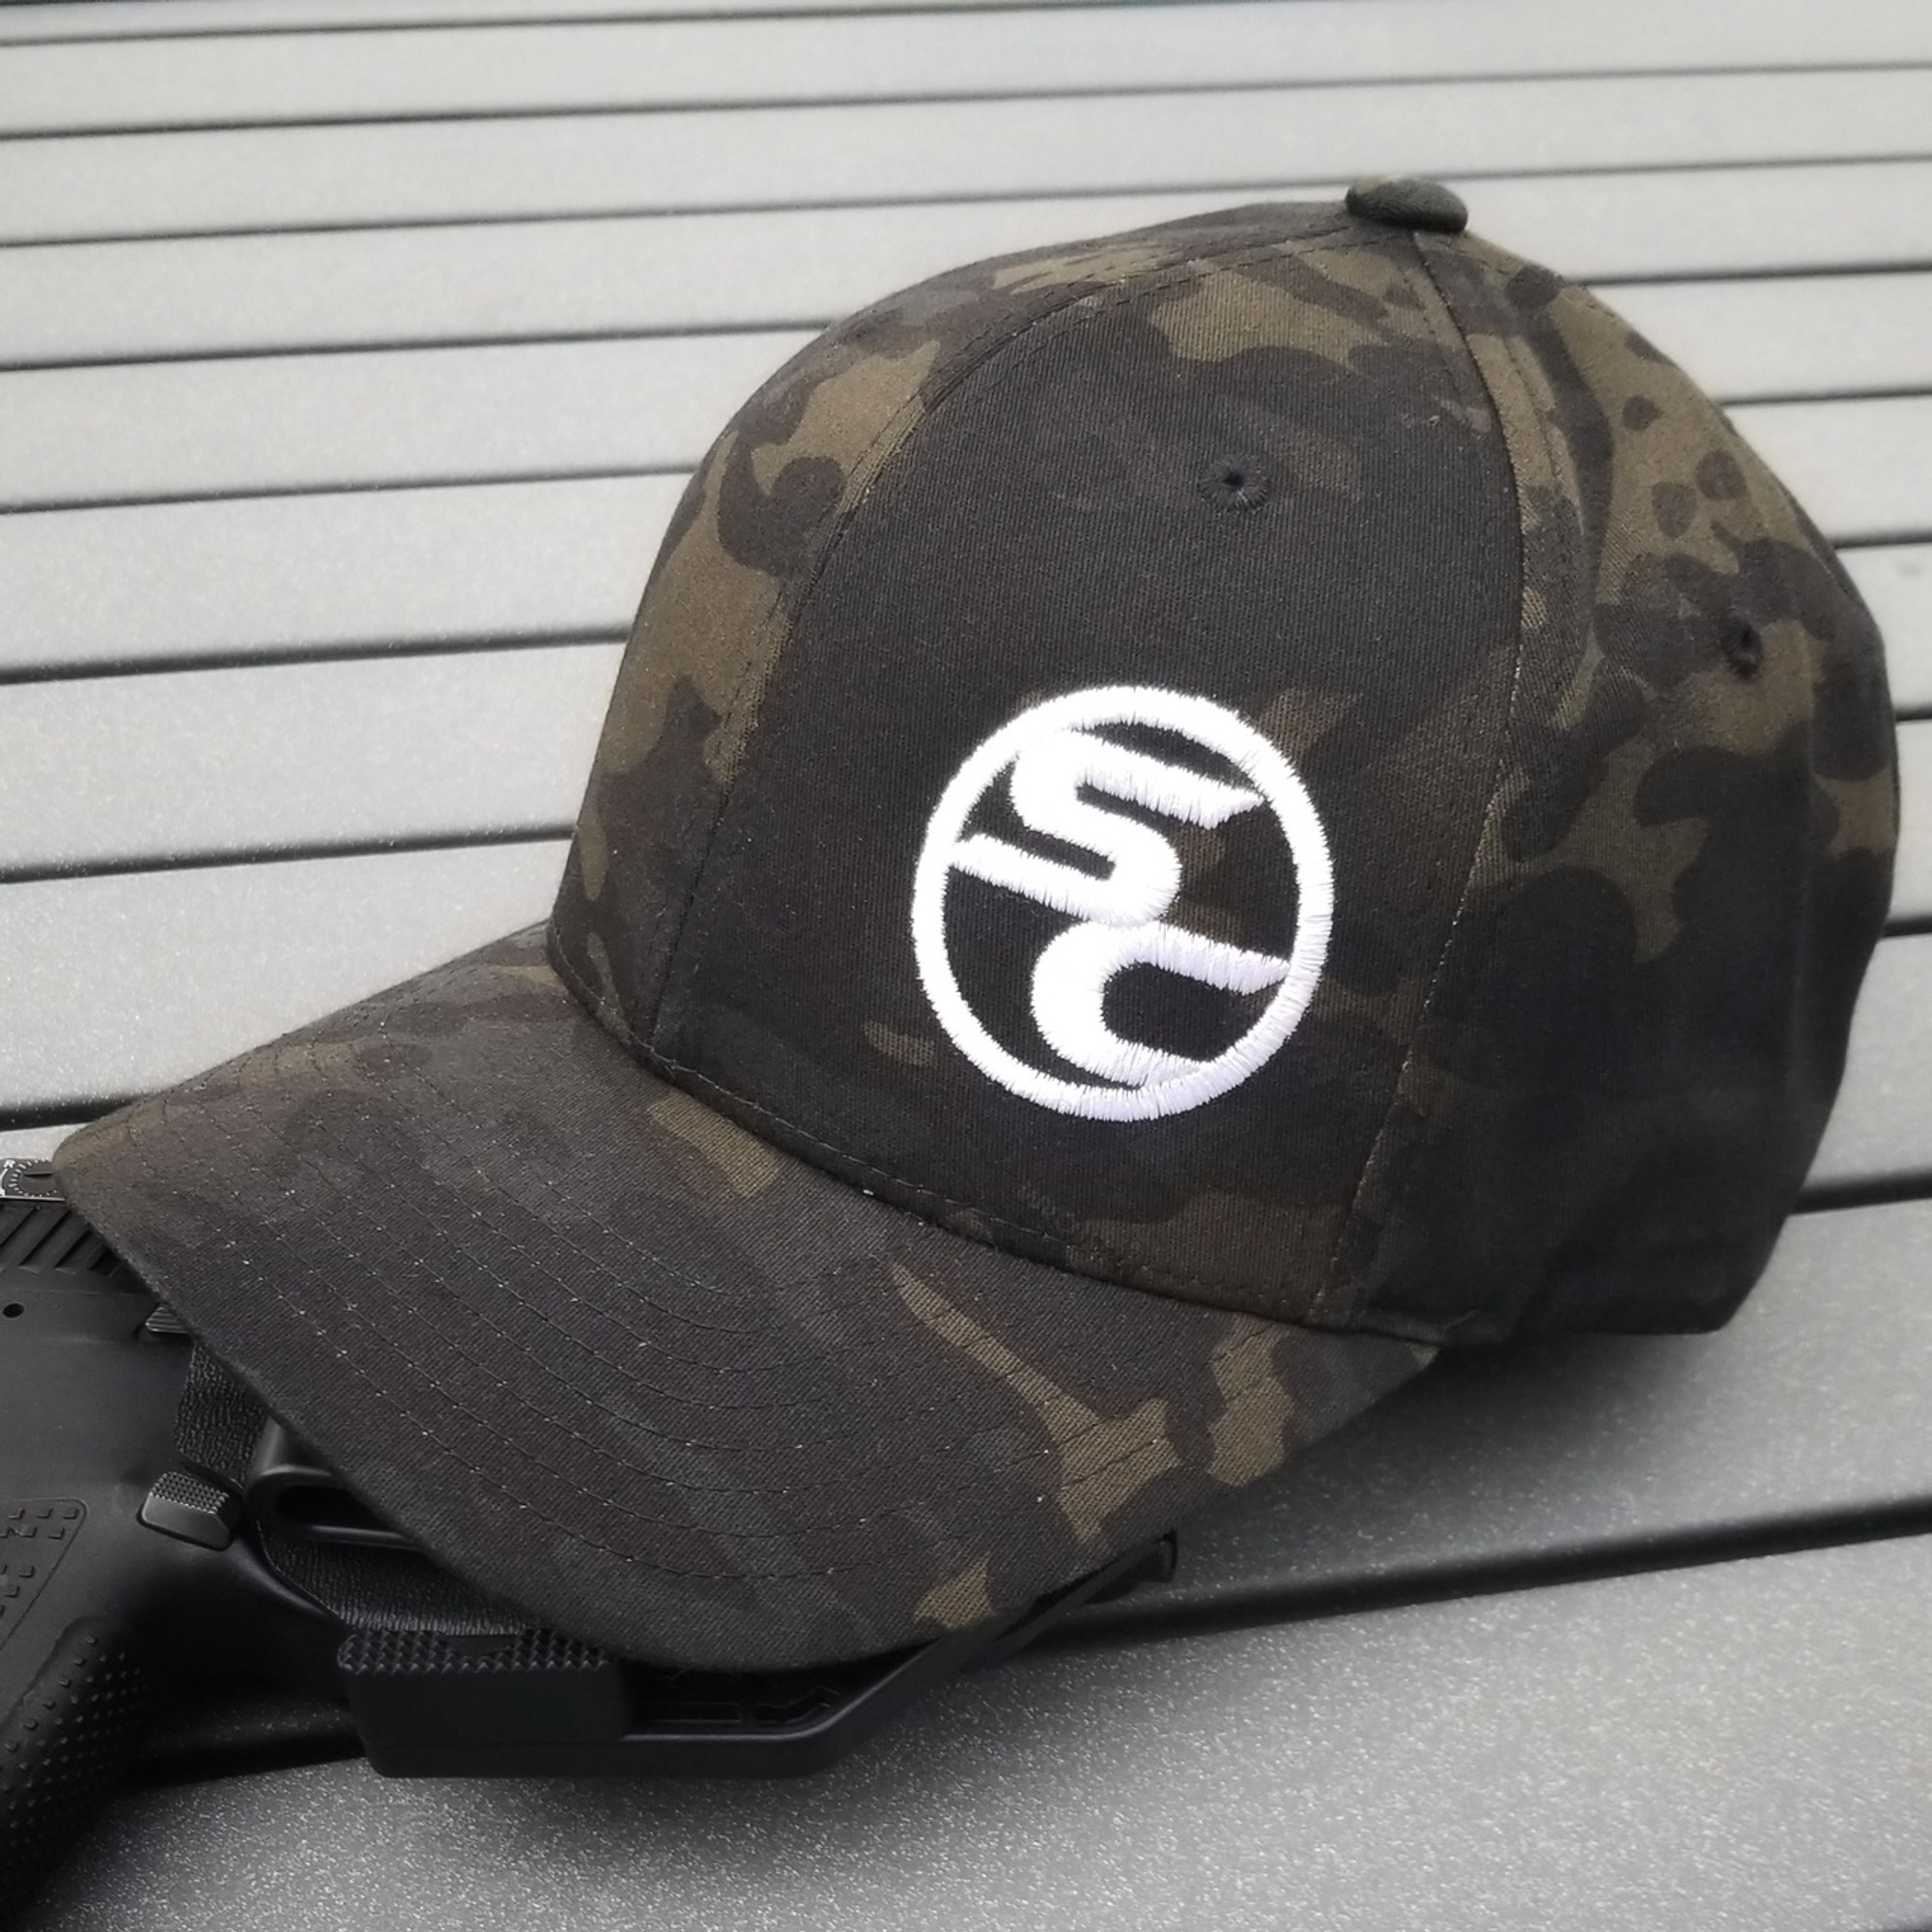 b25733b985013 SC Black MultiCam Flexfit Hat - Shook s Customs LLC